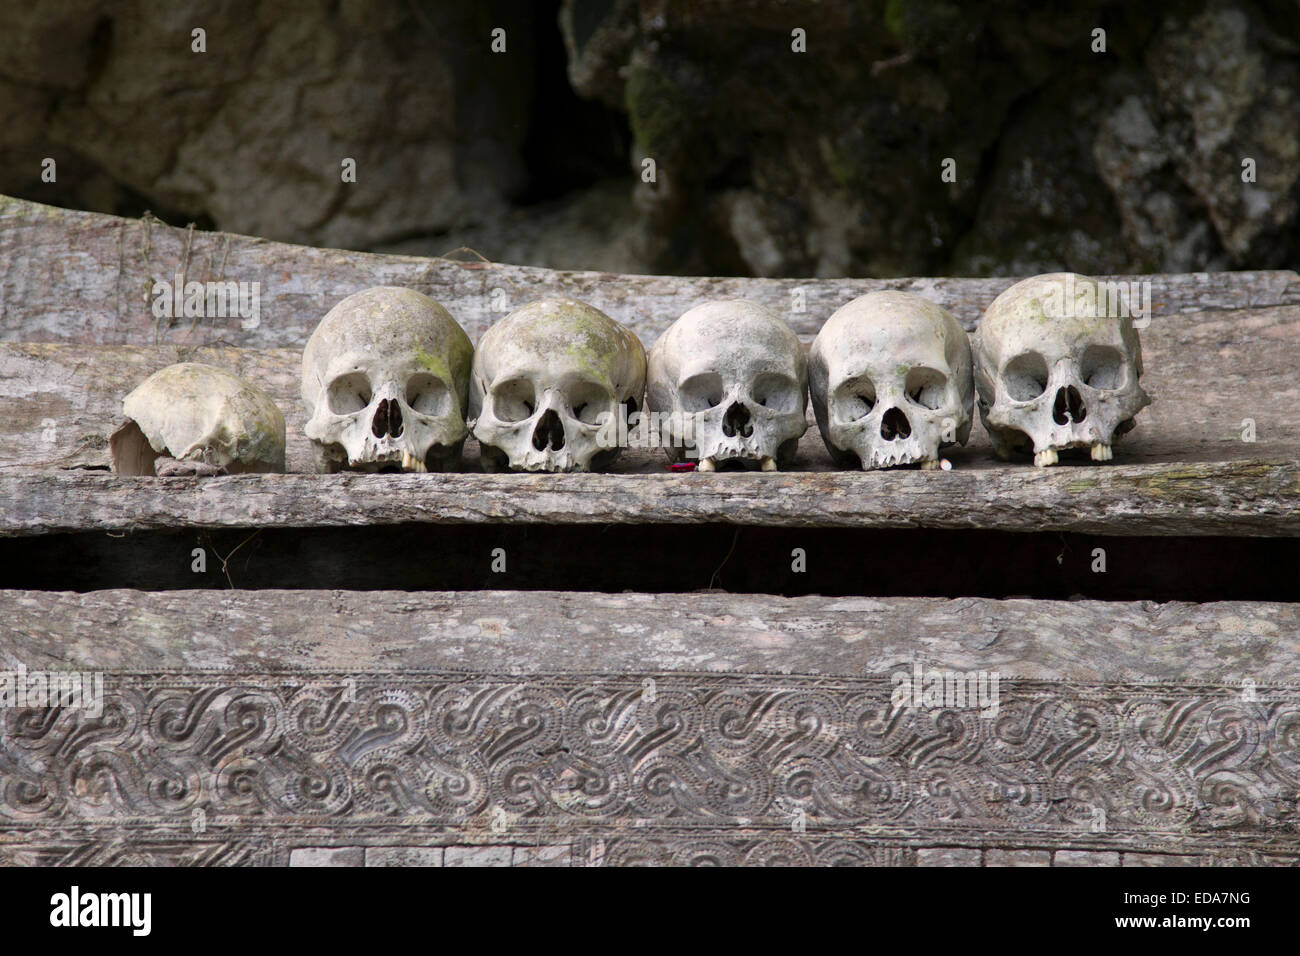 Skulls at Ke'te Kesu - Stock Image